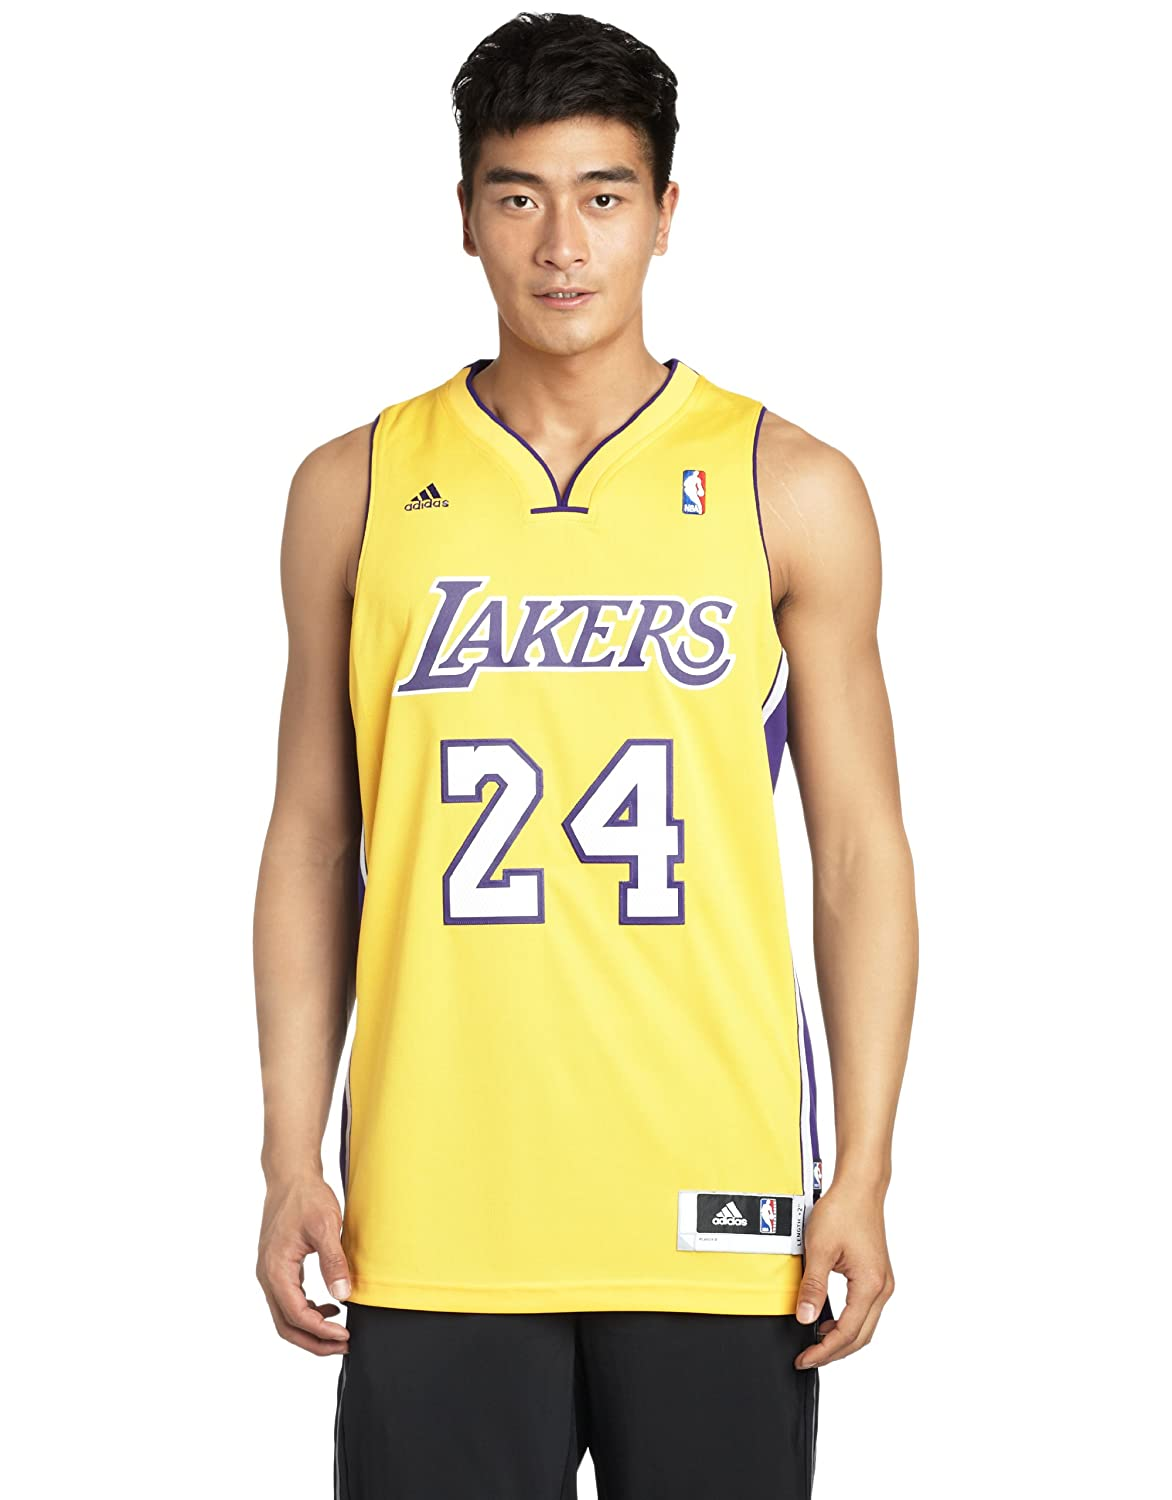 kqkhsh Discount Kobe Jersey | 2016 Kobe Jersey Xl on Sale at DHgate.com